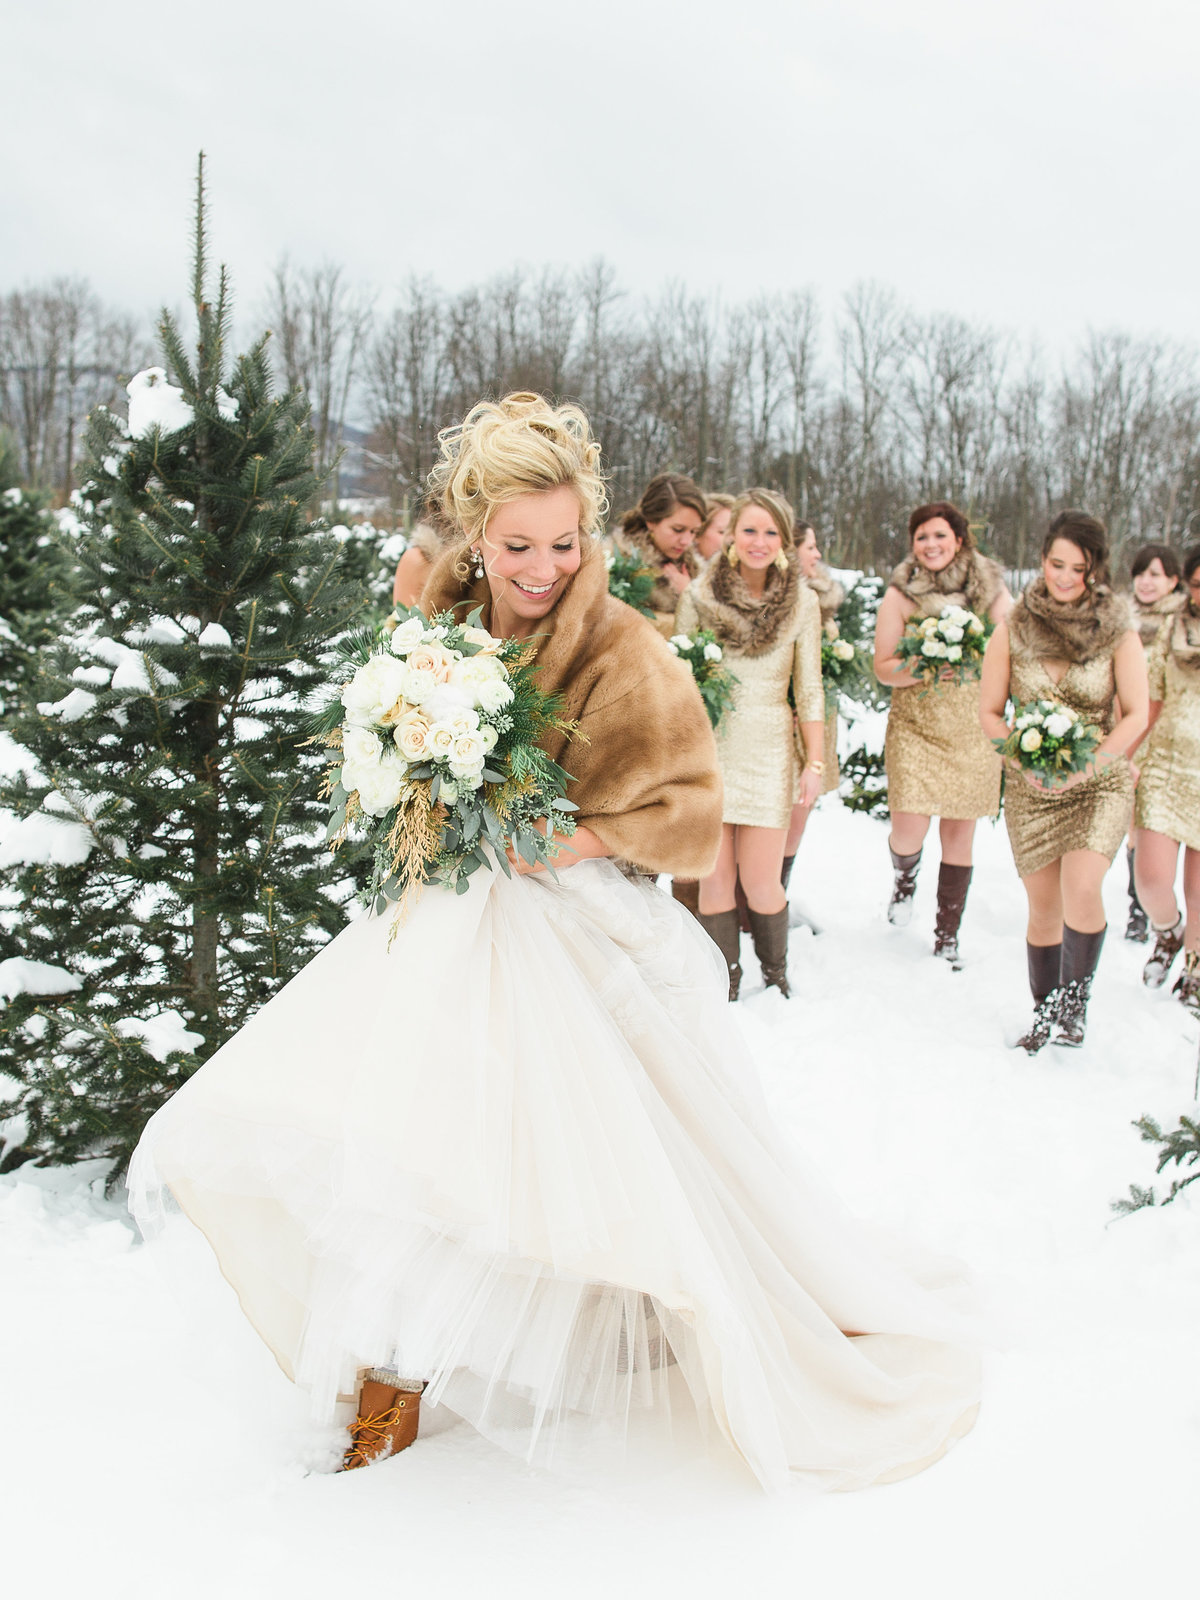 SnowyWedding-LaurenFairPhotography-MS01-2